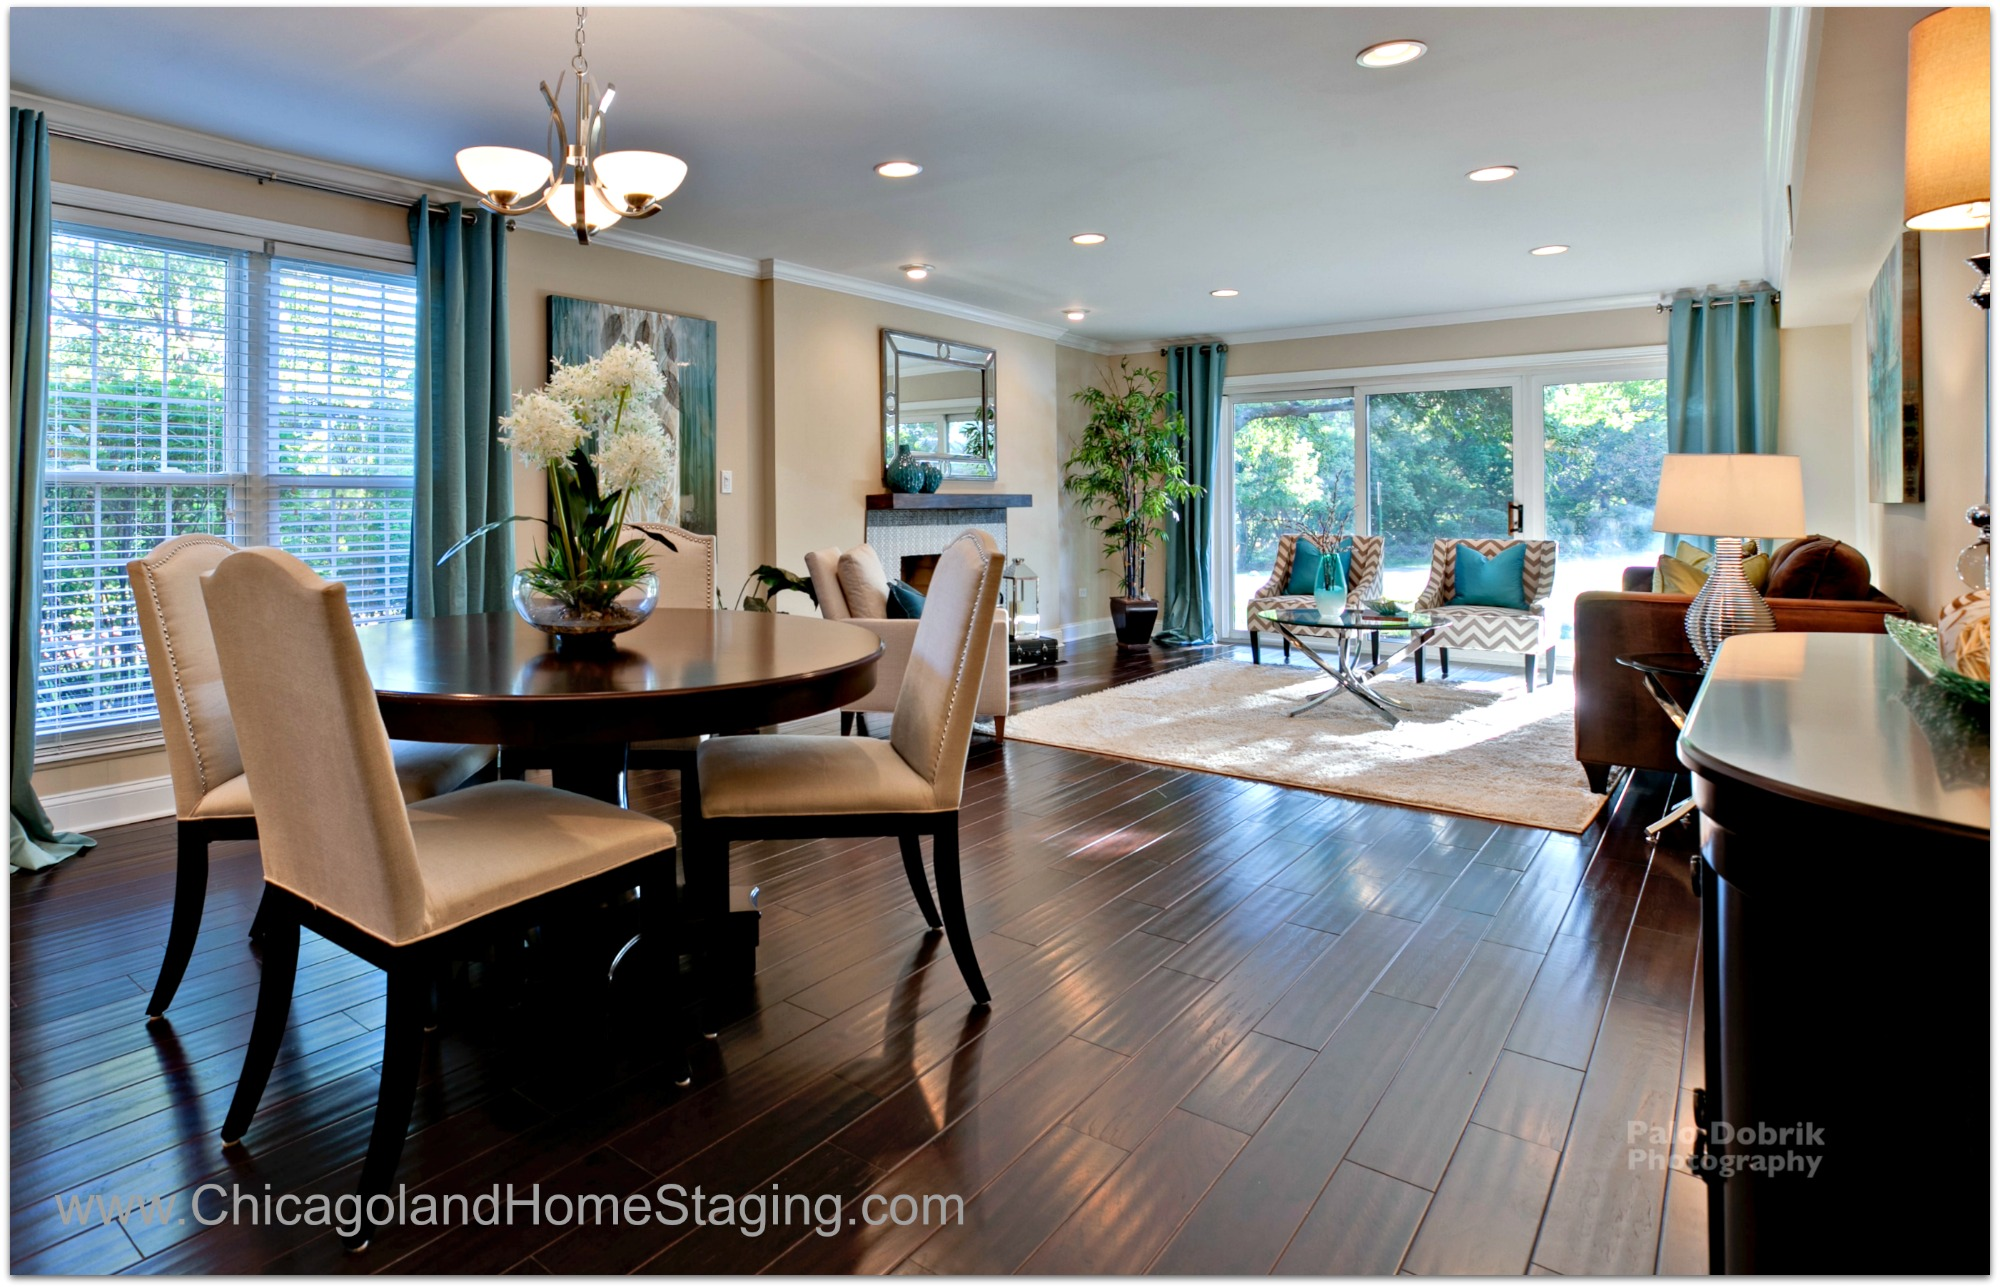 Rolling Meadows Vacant Home Staging: Are you inspired?